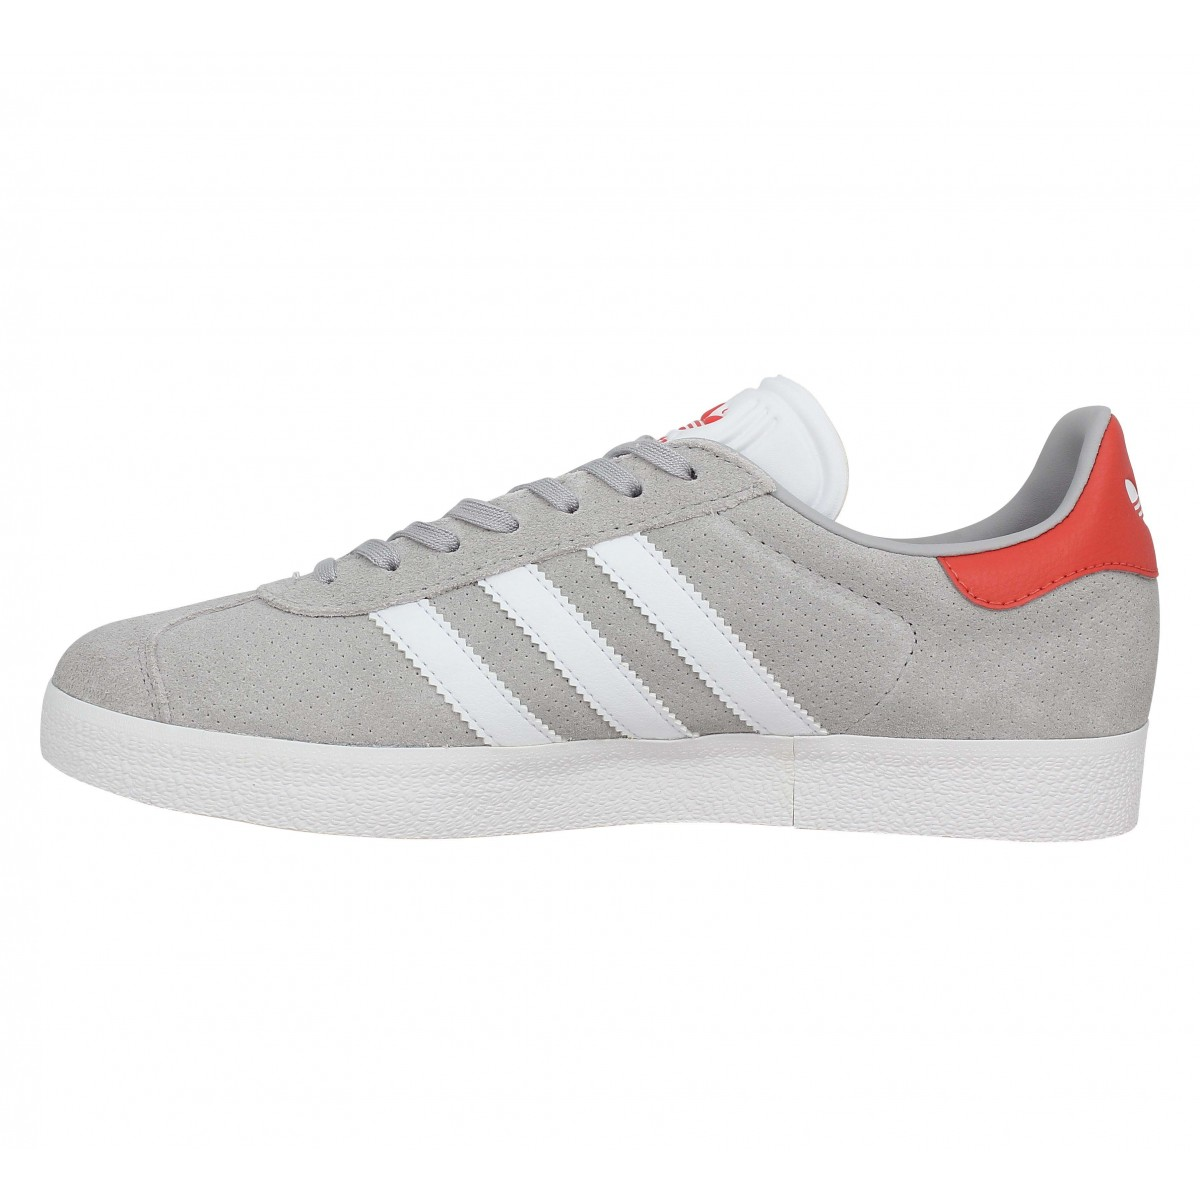 Chaussures Adidas gazelle velours homme gris rouge homme | Fanny ...